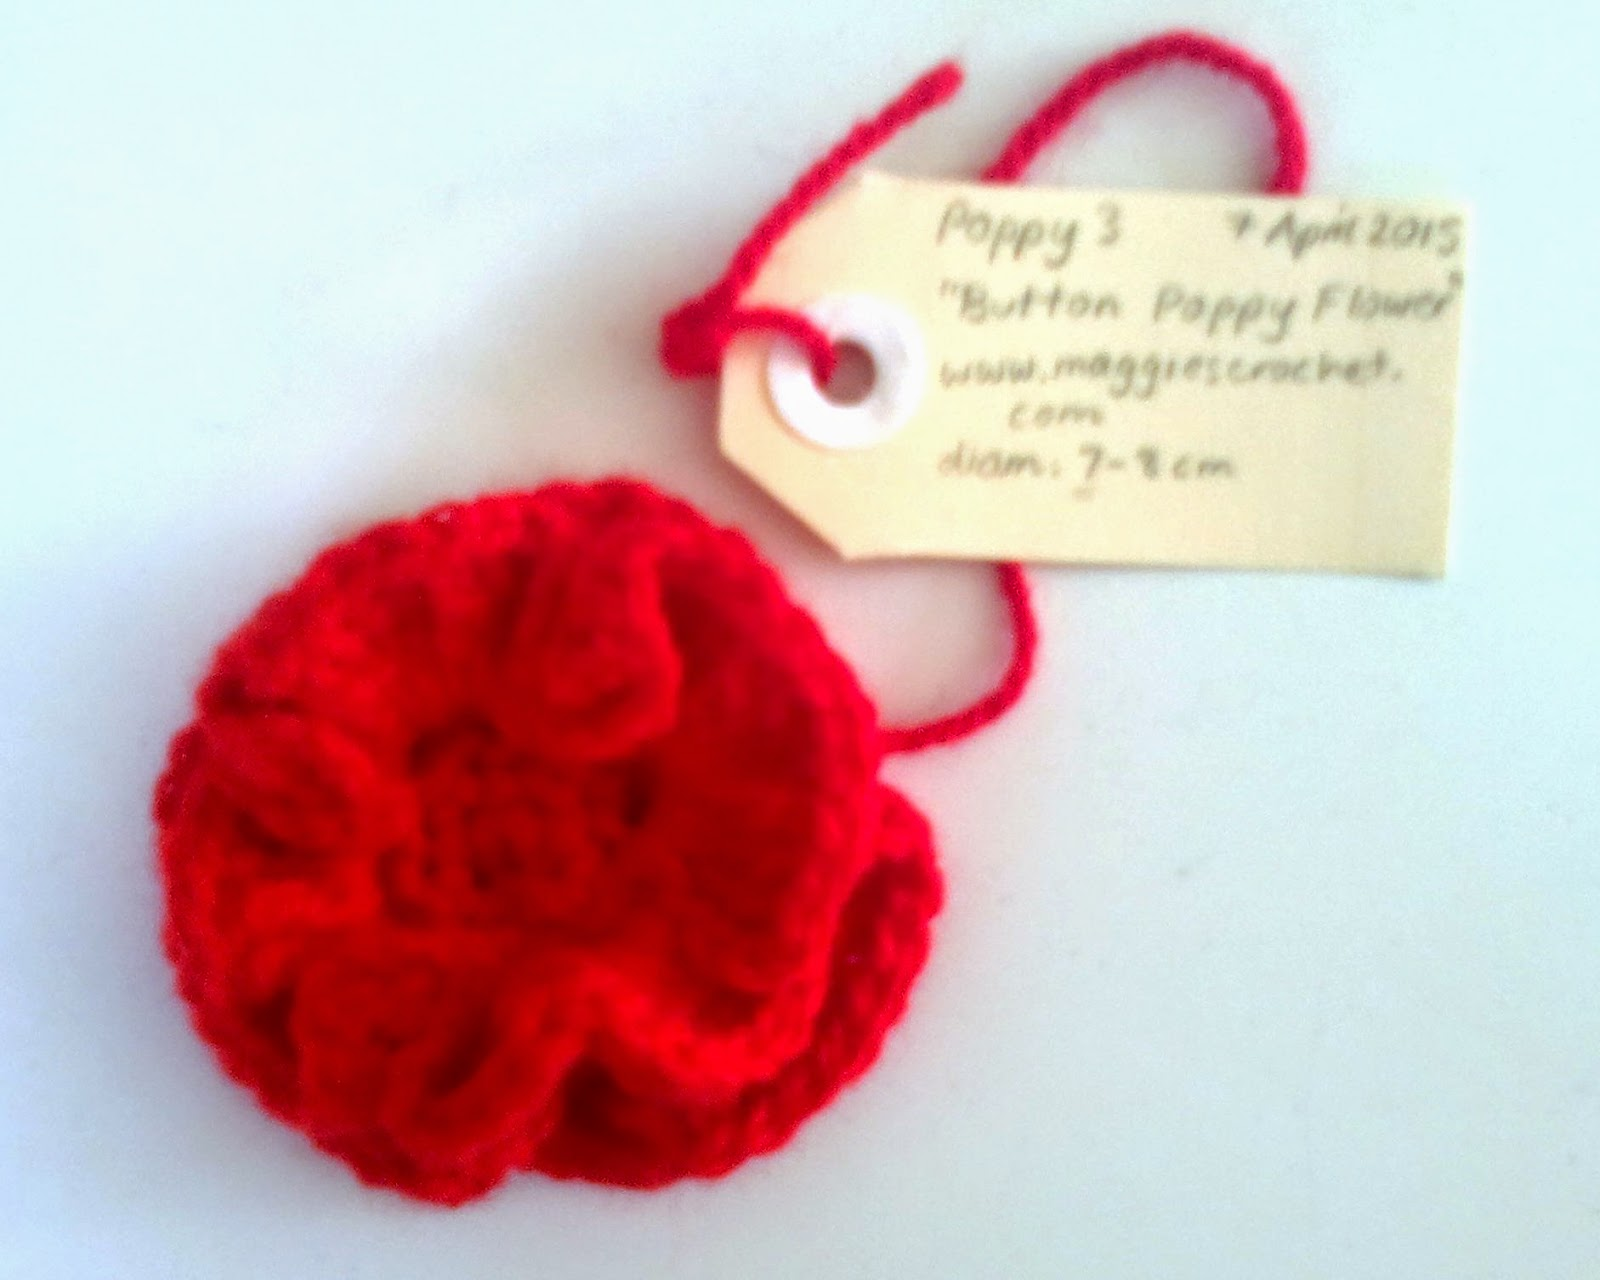 Red crocheted rosette with flat circular centre for a black button to be attached. An identity tag is attached with the loose end.